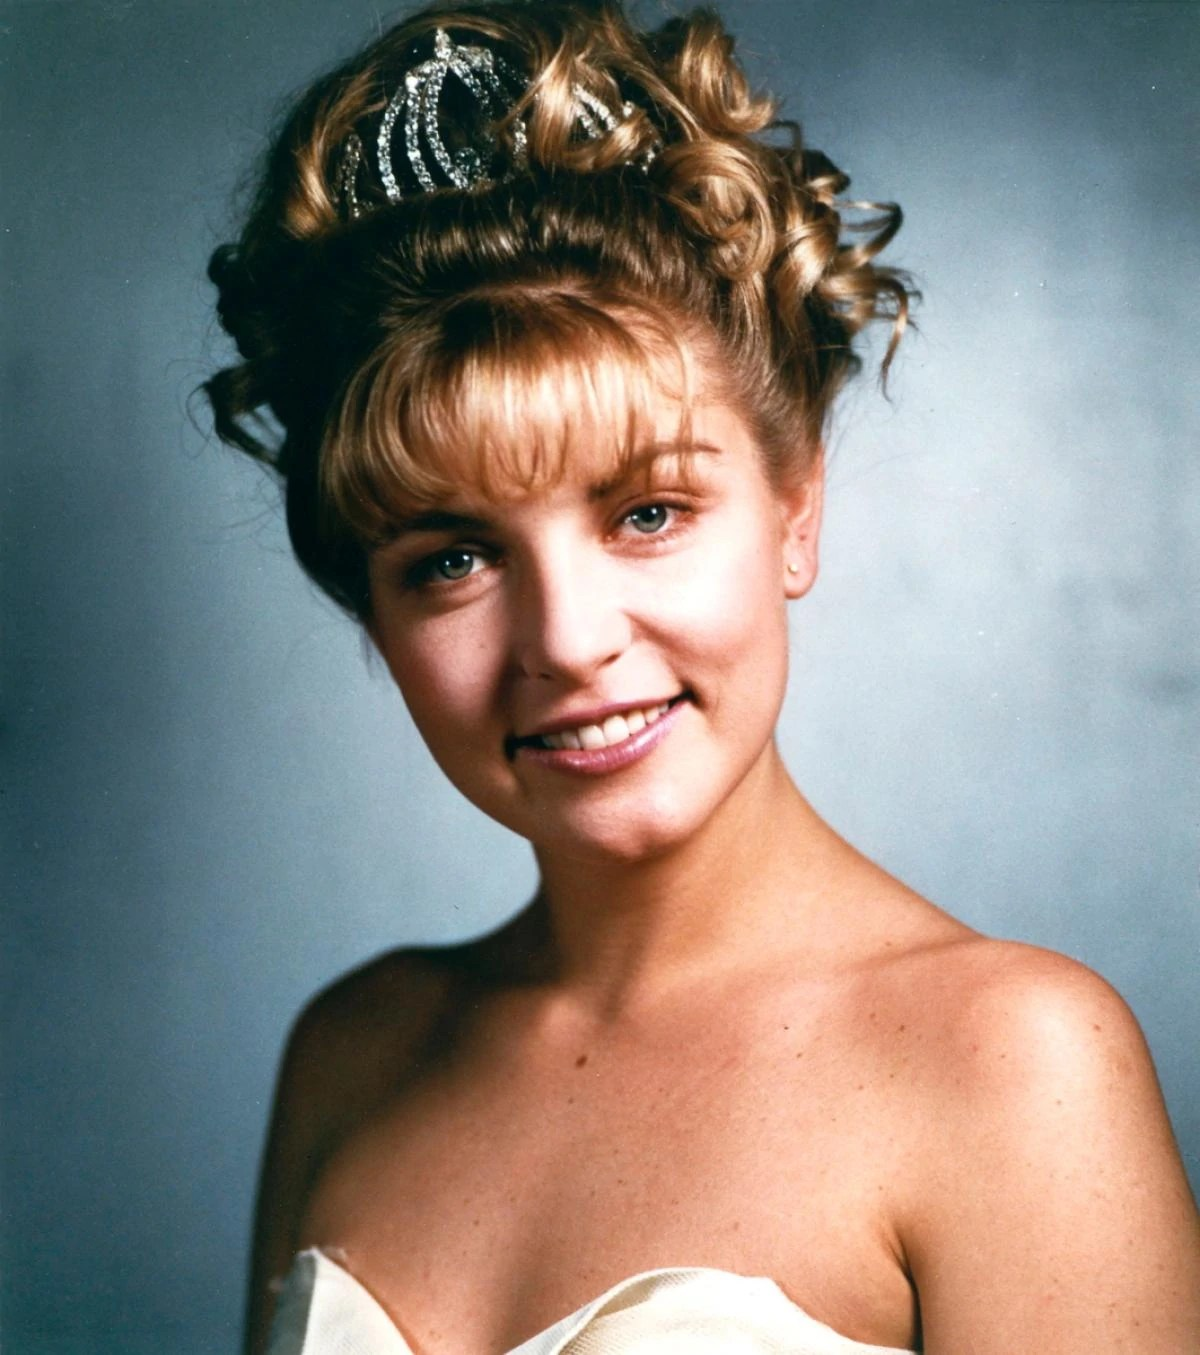 https://i1.wp.com/img3.wikia.nocookie.net/__cb20111030035926/twinpeaks/images/e/ef/Laura_Palmer,_the_Queen_Of_Hearts.jpg?w=1200&quality=100